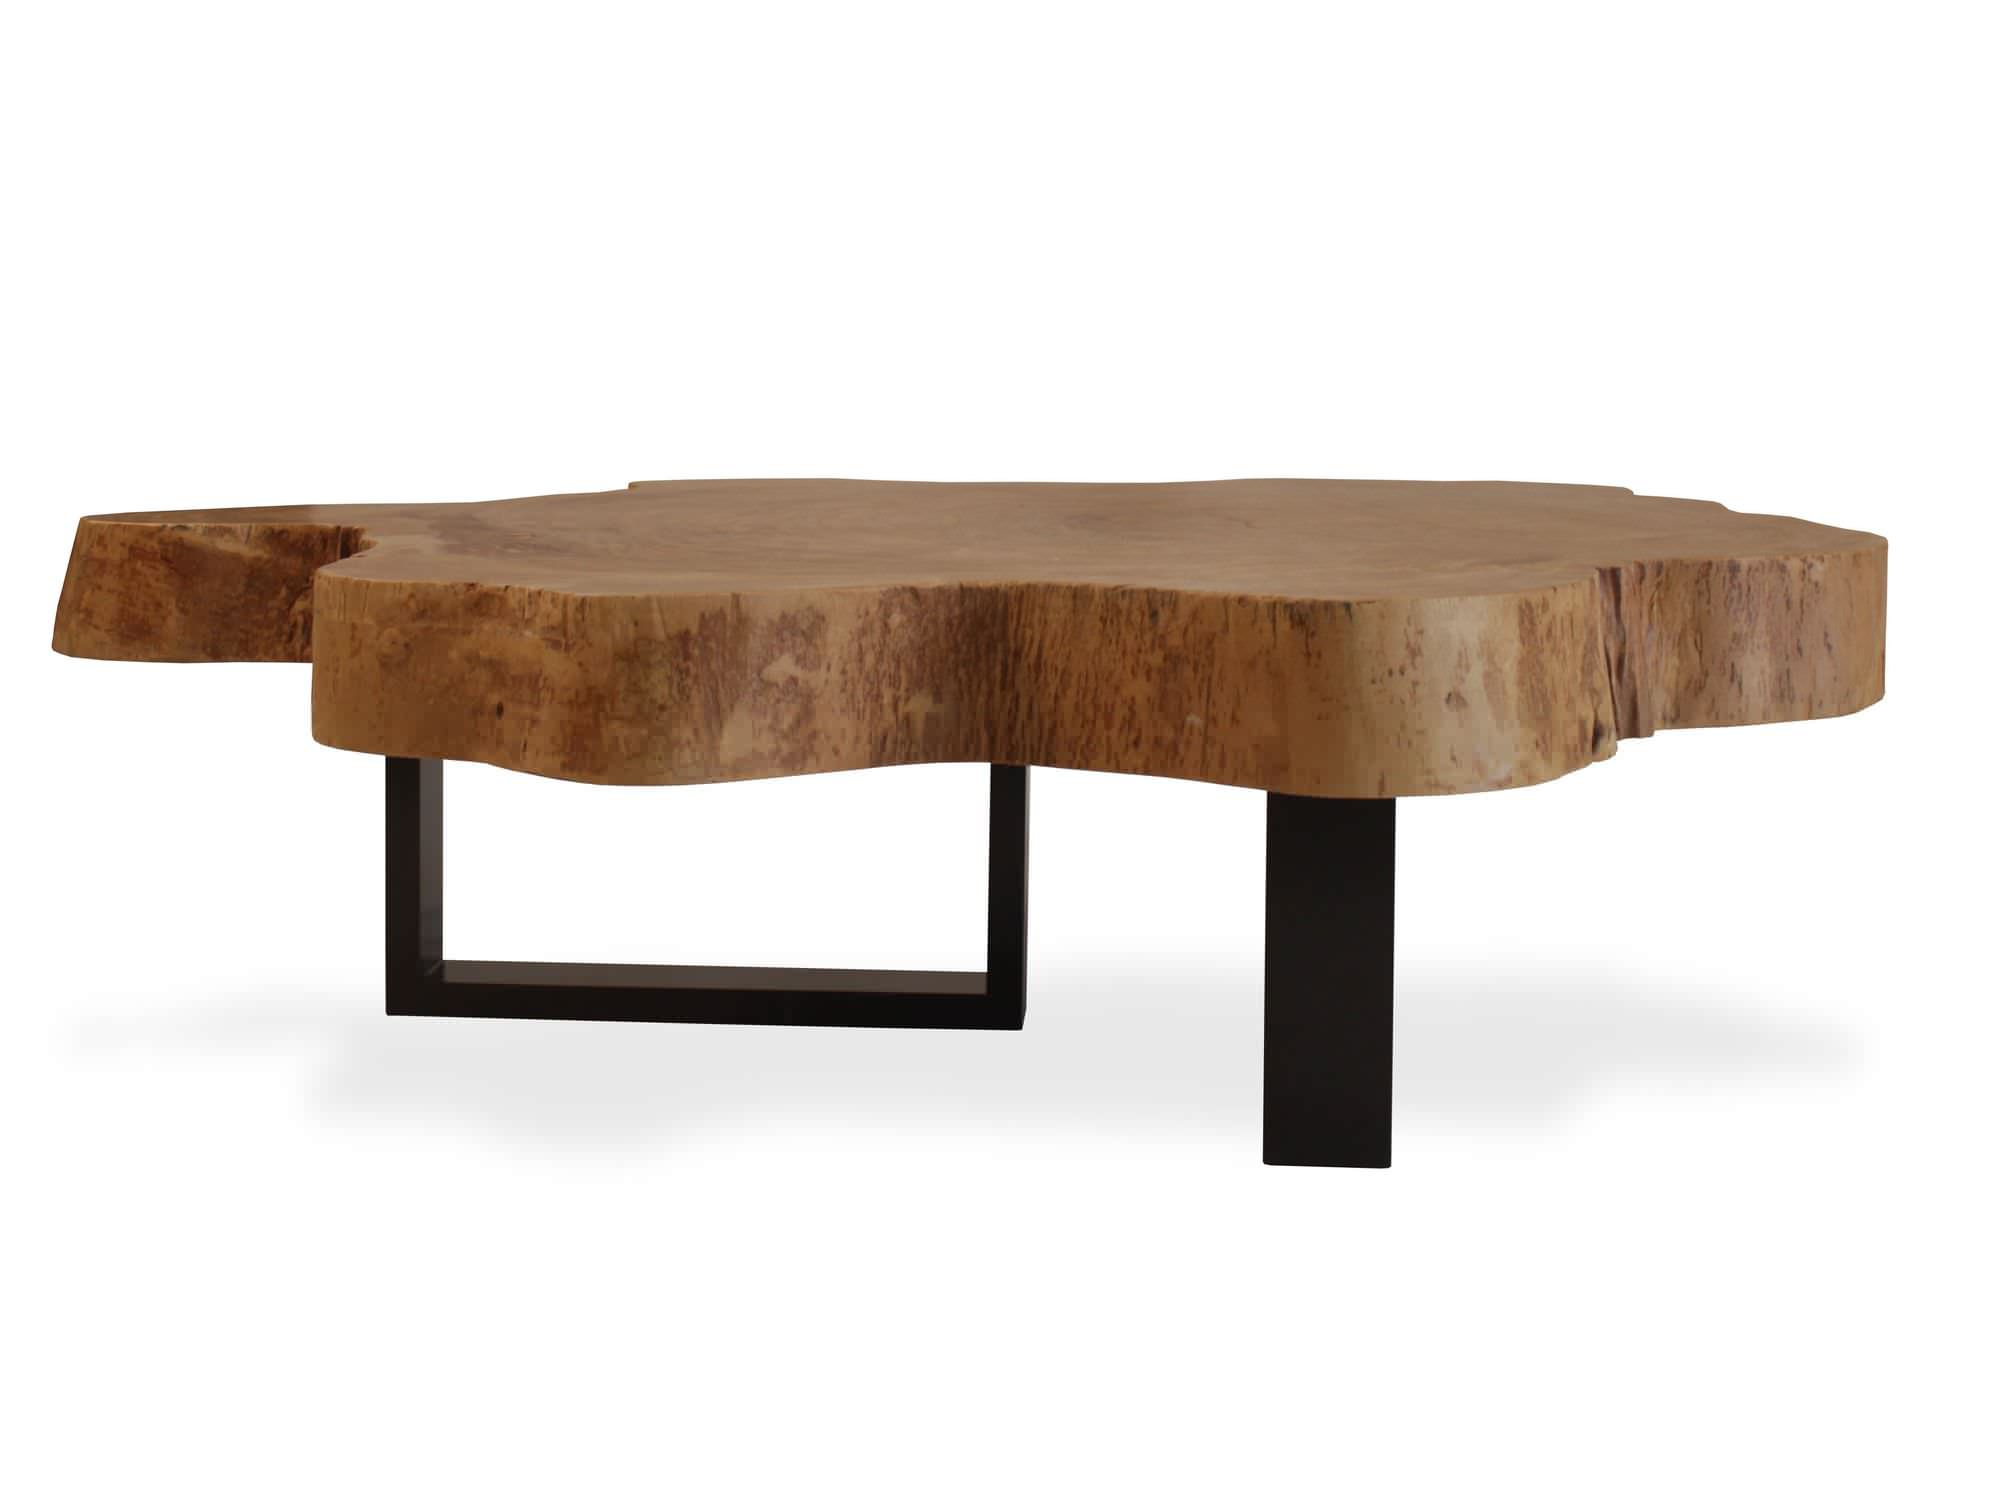 Contemporary Coffee Table Wooden In Reclaimed Material Organic Jatoba And Metal